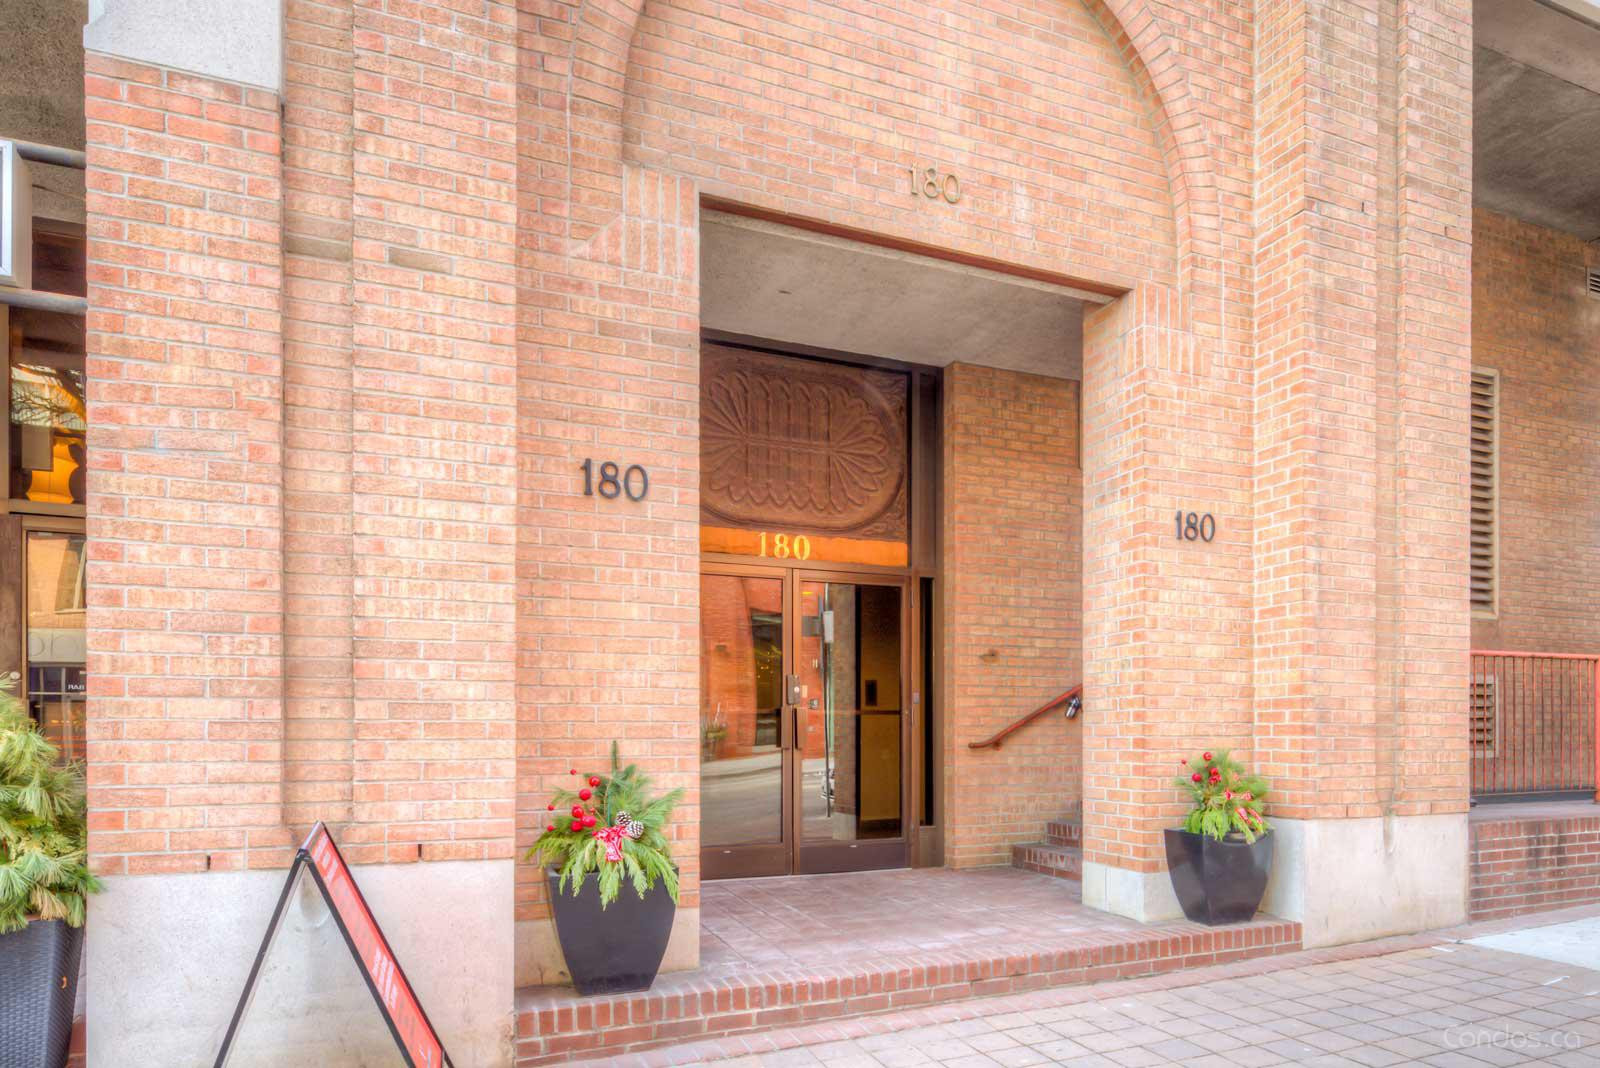 Lofts on Frederick at 180 Frederick St, Toronto 1